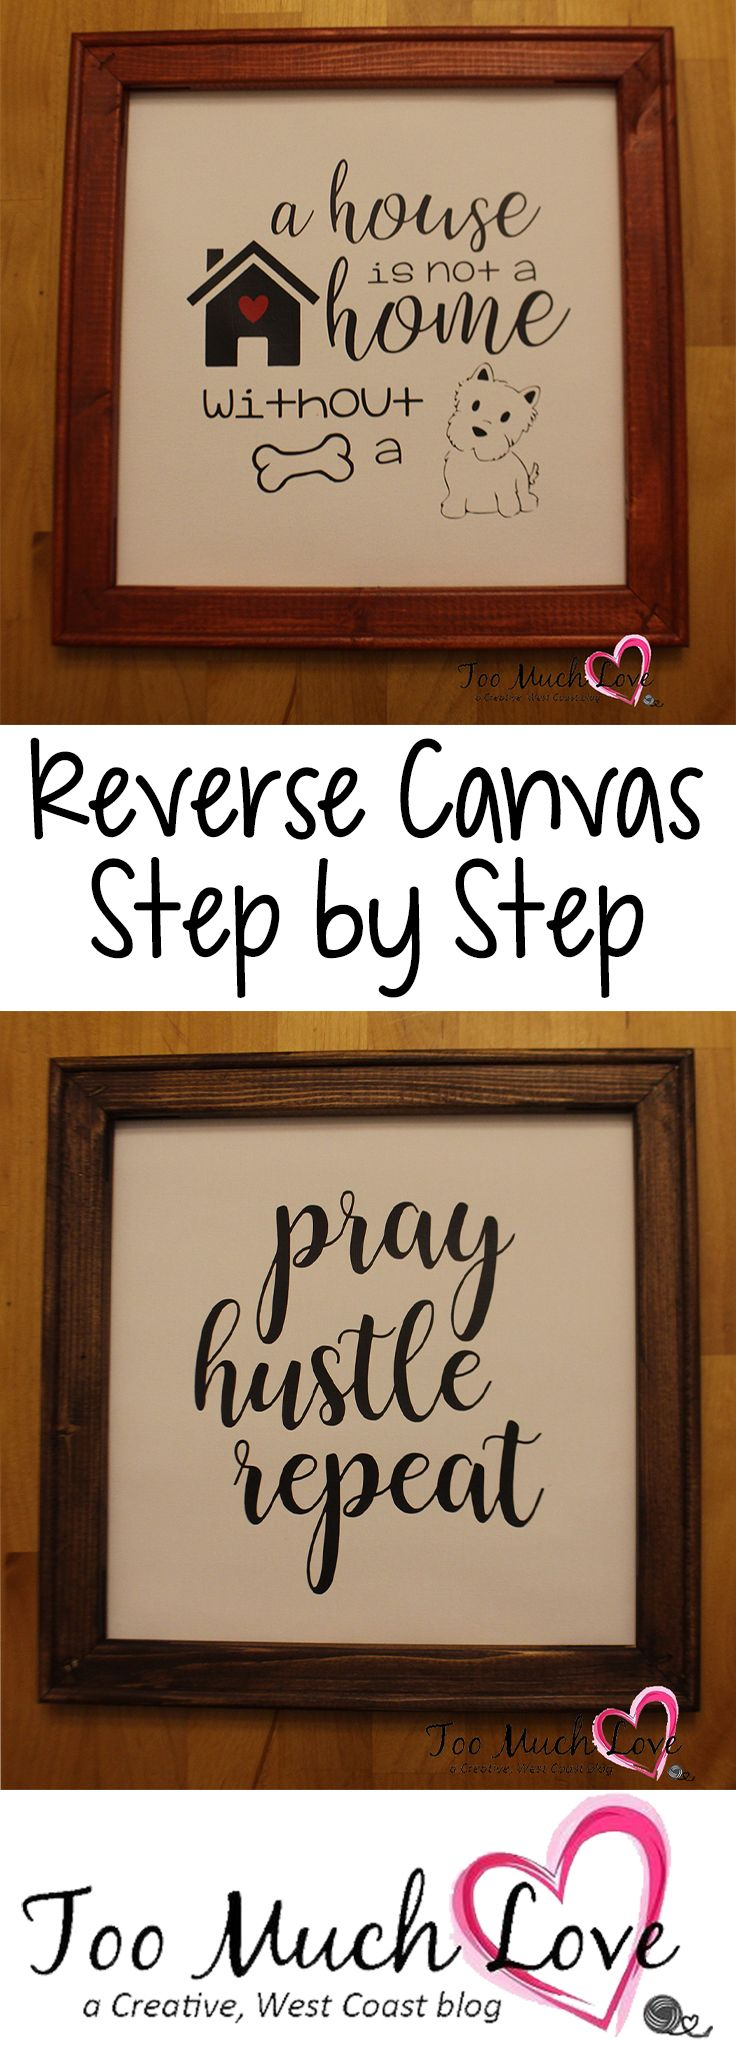 64 Best Reverse Canvas Images On Pinterest Thoughts